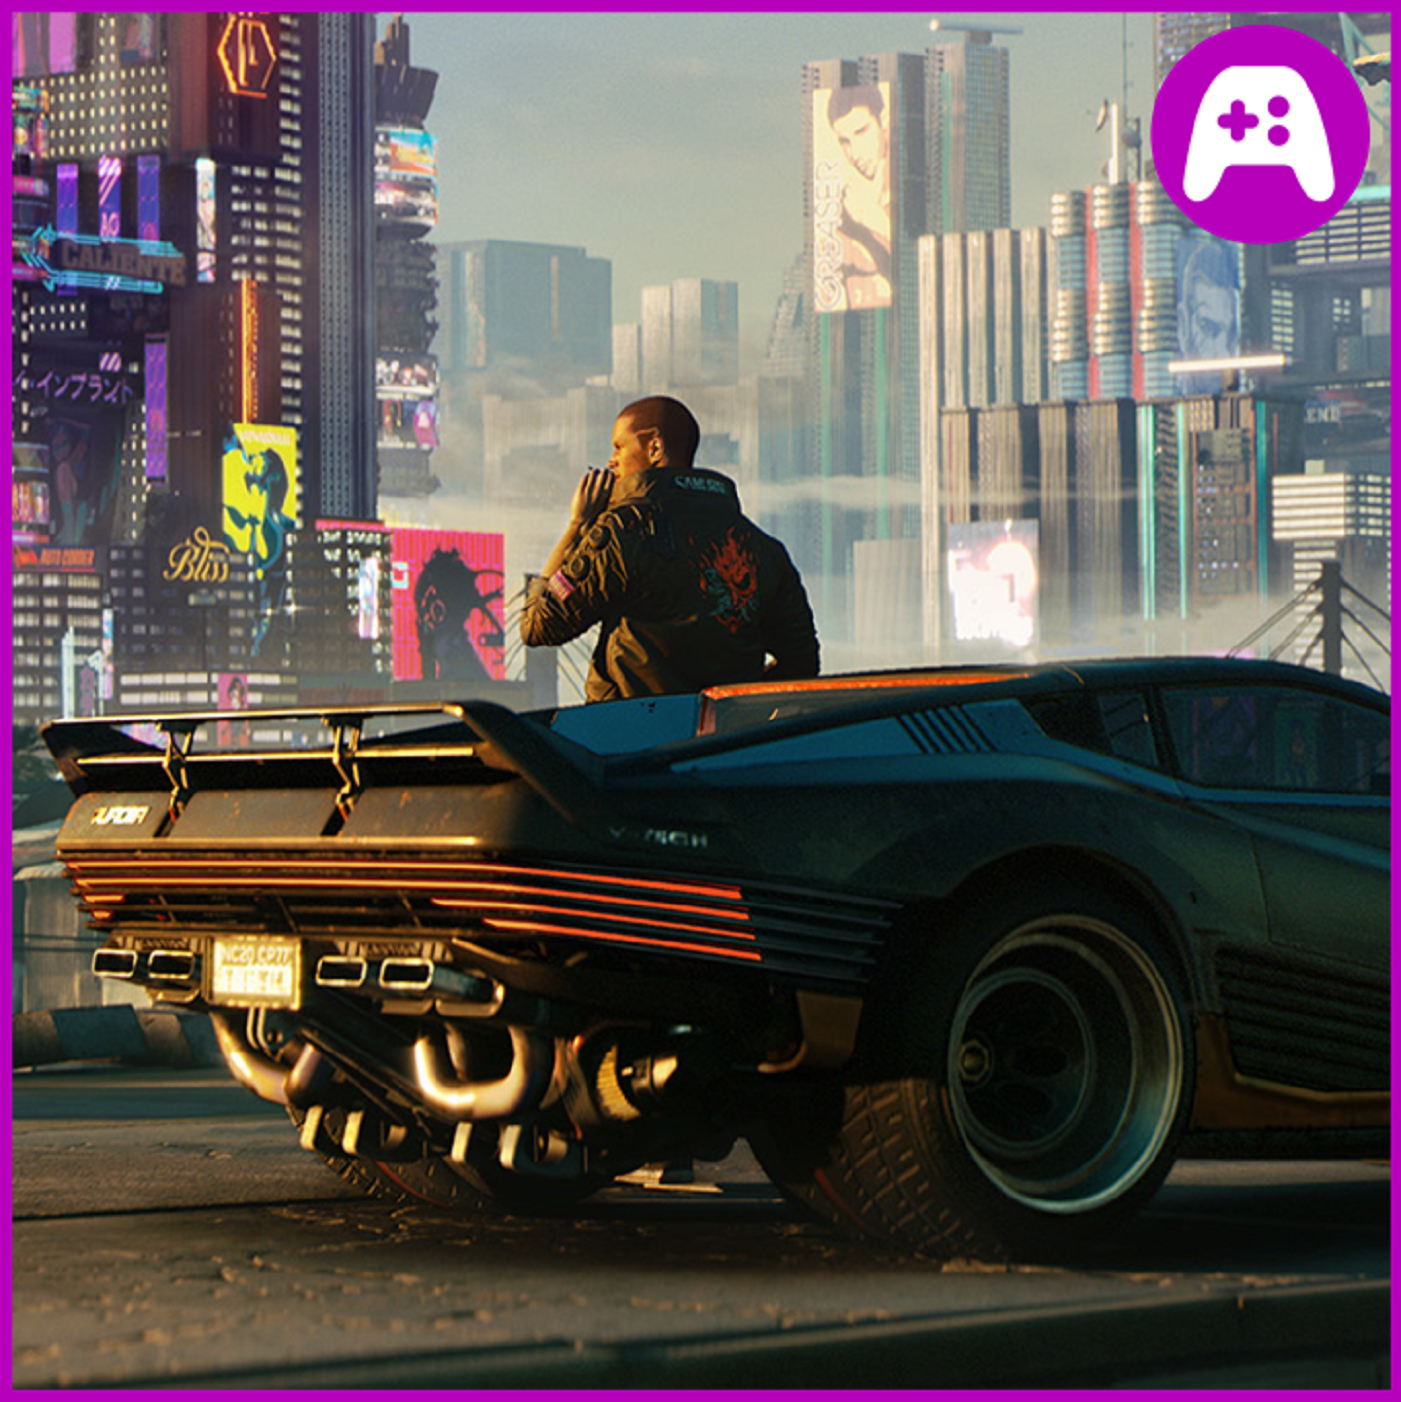 Is Cyberpunk 2077 Over-hyped? - What's Good Games Live (Ep. 161)